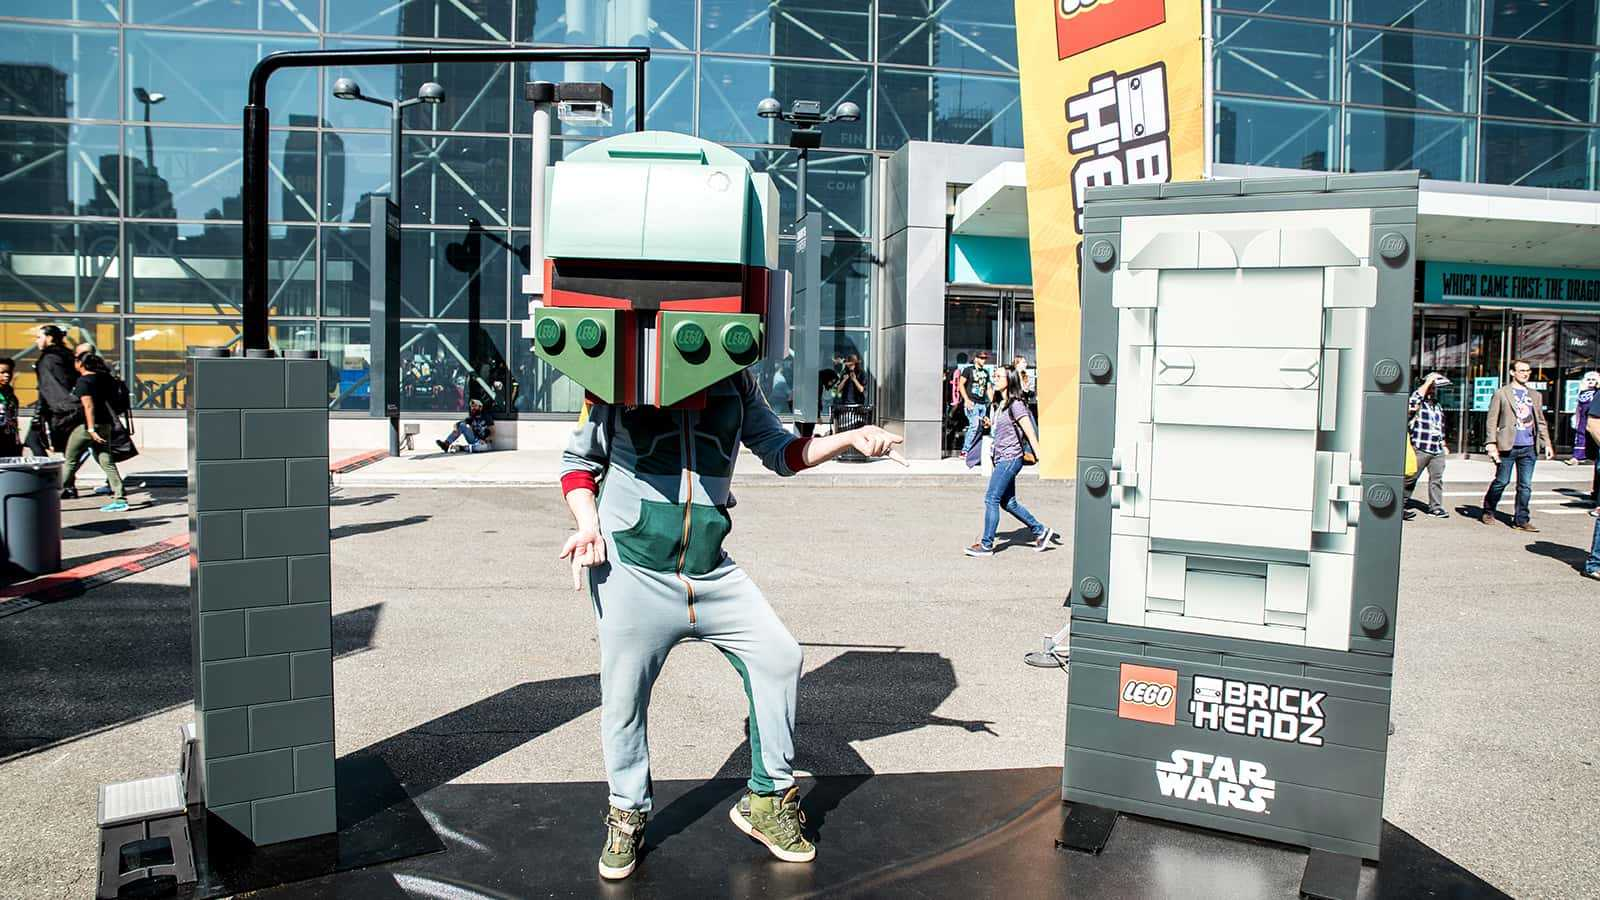 Fans of all ages snap photos with larger-than-life Boba Fett and Hans Solo in Carbonite to post #GoBrick social media messages from the LEGO Star Wars Brickheadz zone at New York Comic Con 2017.